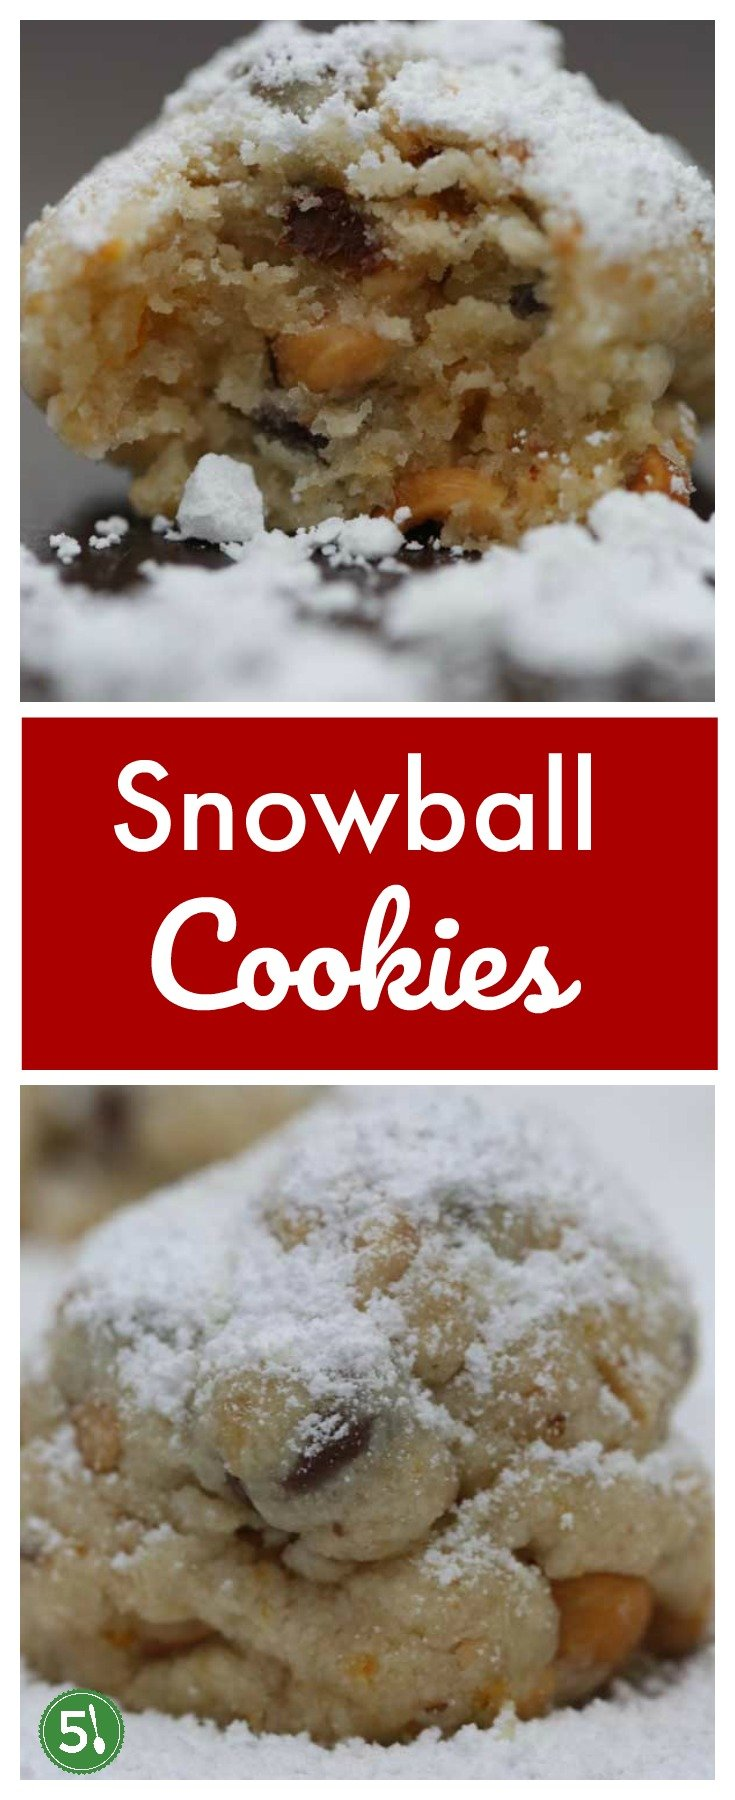 Snowball cookies recipe with orange zest and chopped nuts (pecans or hazelnuts).